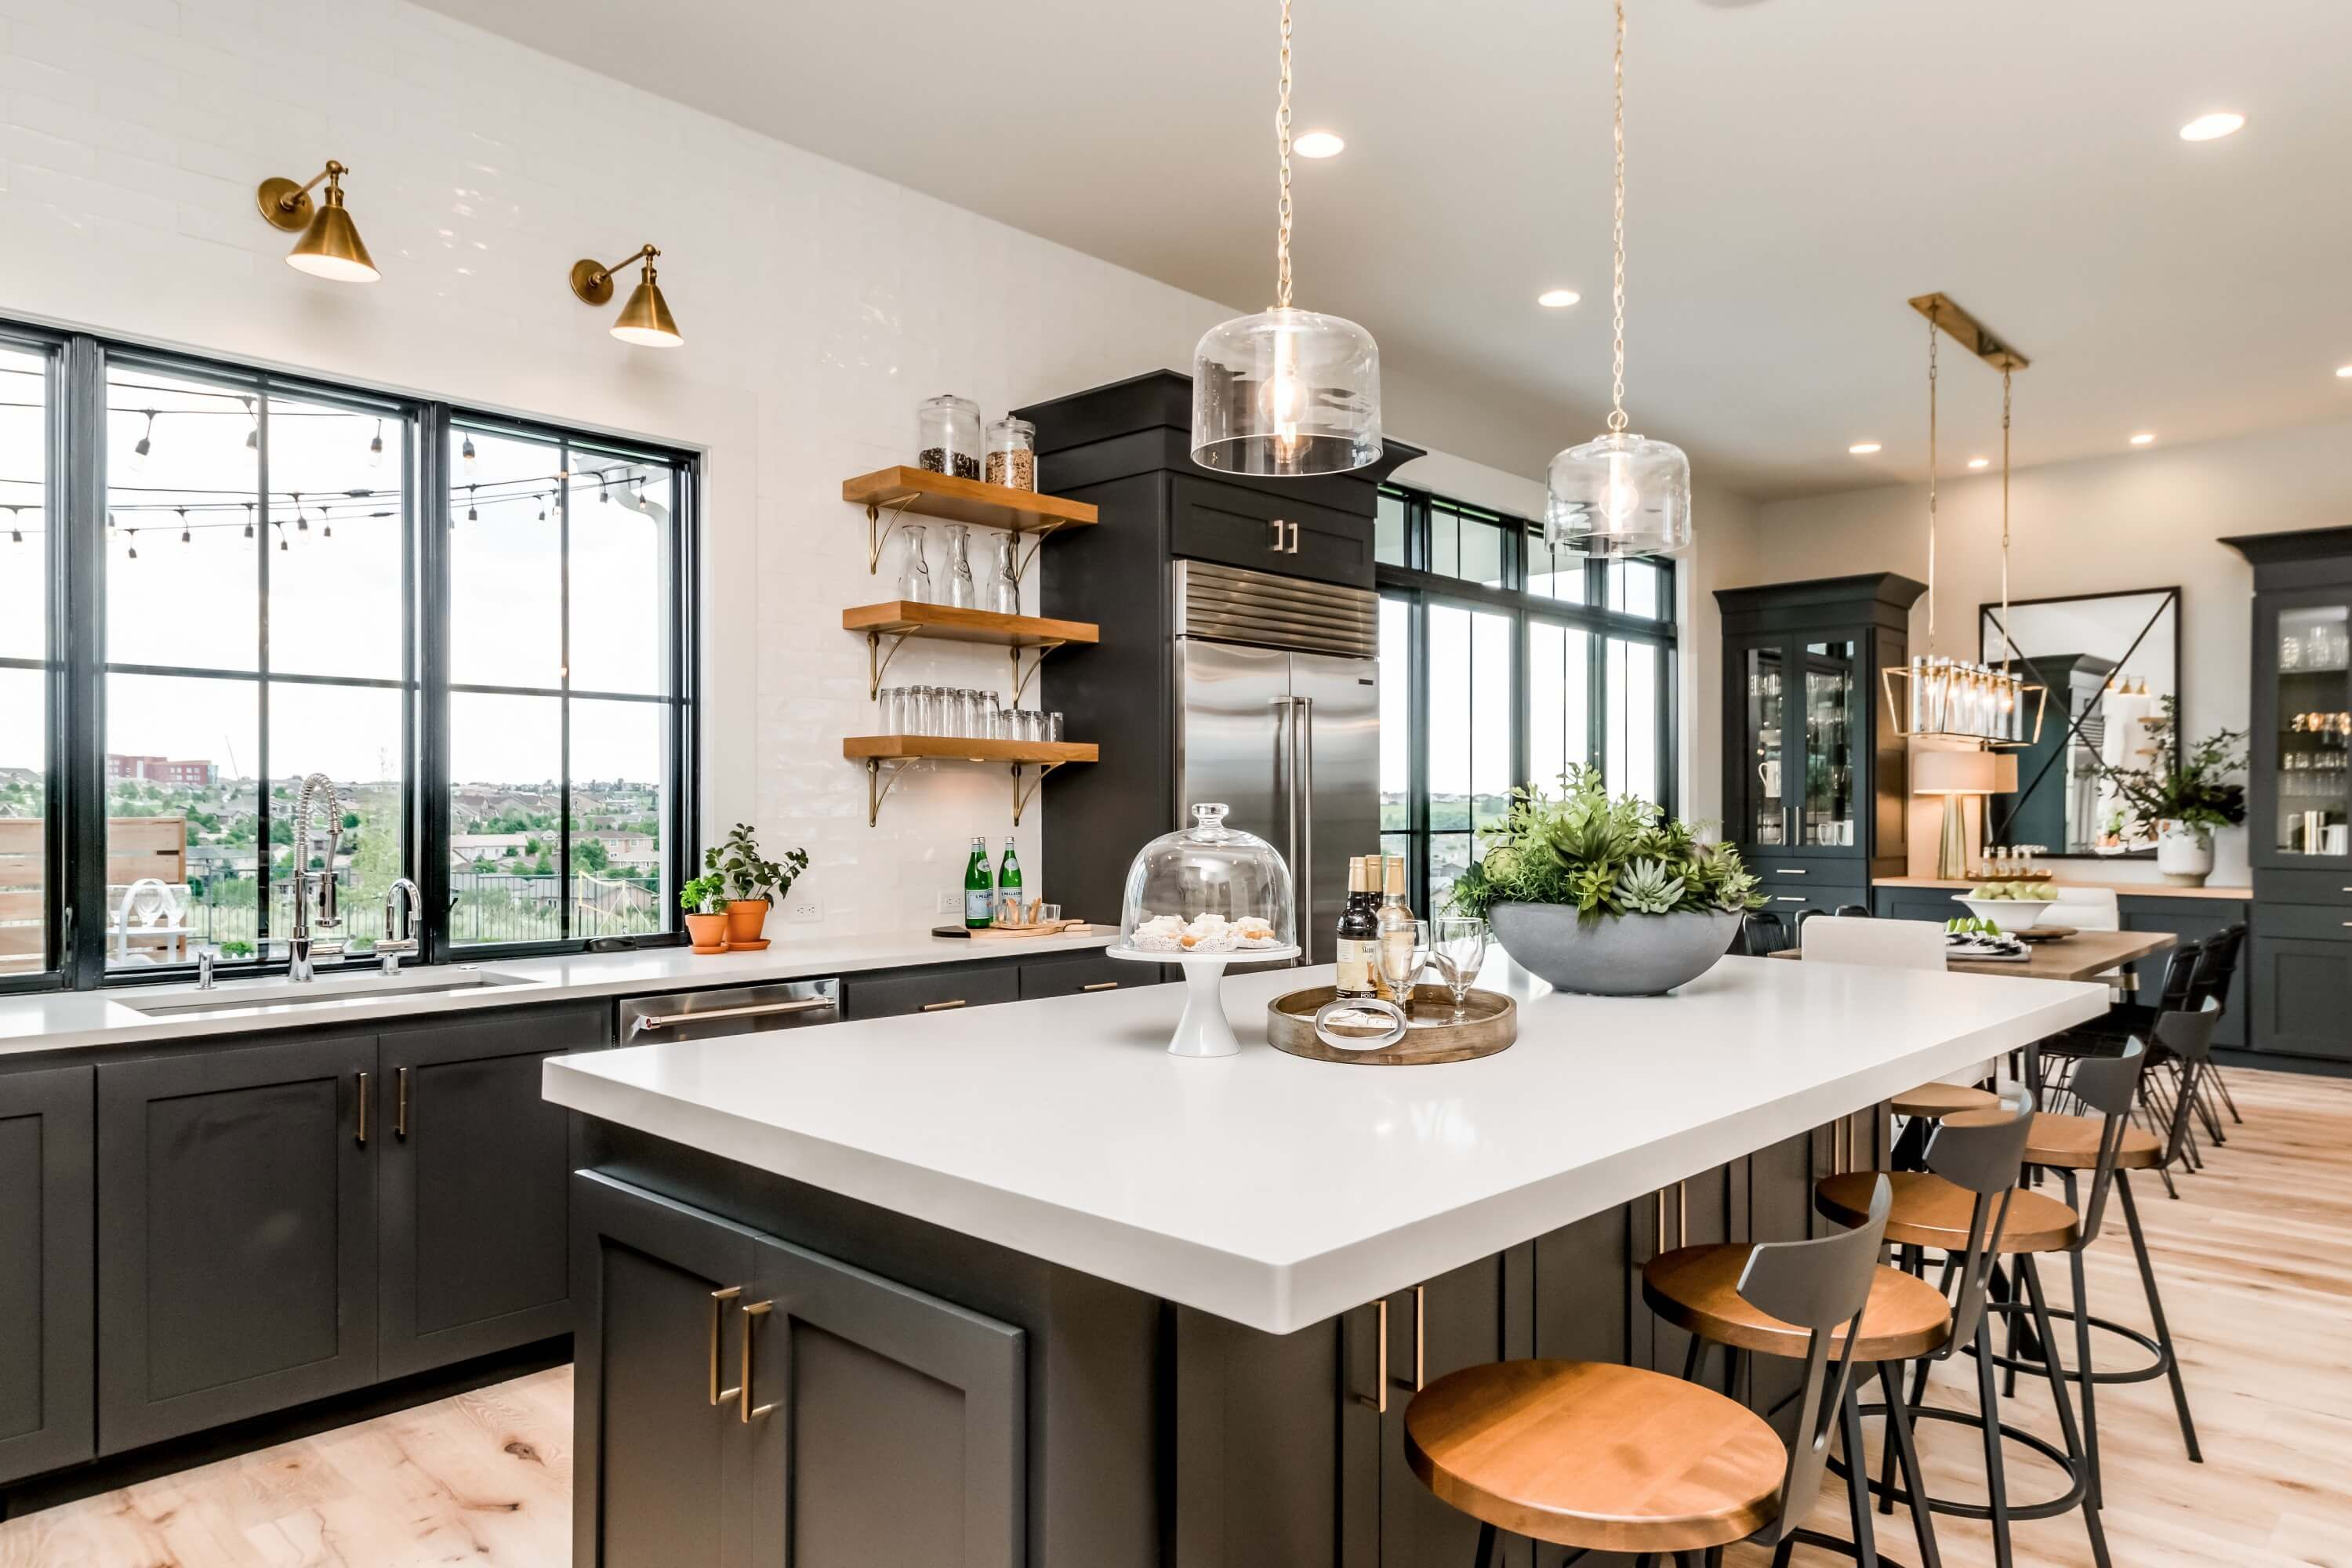 Here Is A Sneak Preview Of Our Home For The 2017 Parade Of Homes Colorado Springs Kitchen Remodel Parade Of Homes Home